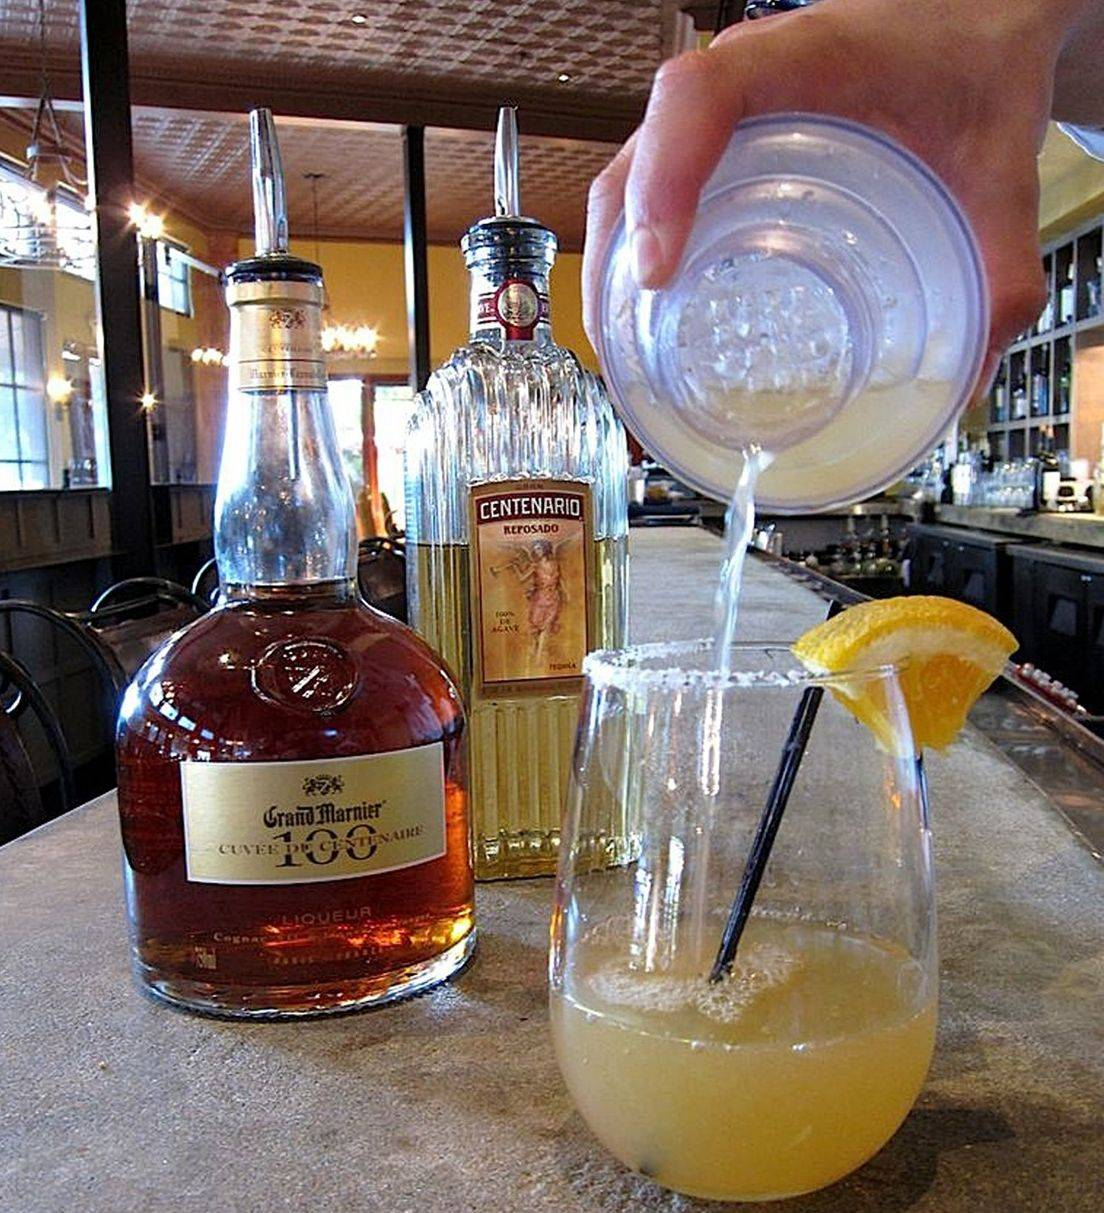 At Hugo's restaurant in Houston, margaritas are made with top-grade tequilas like Centenario and orange liqueurs like Grand Marnier, never as a frozen slush.